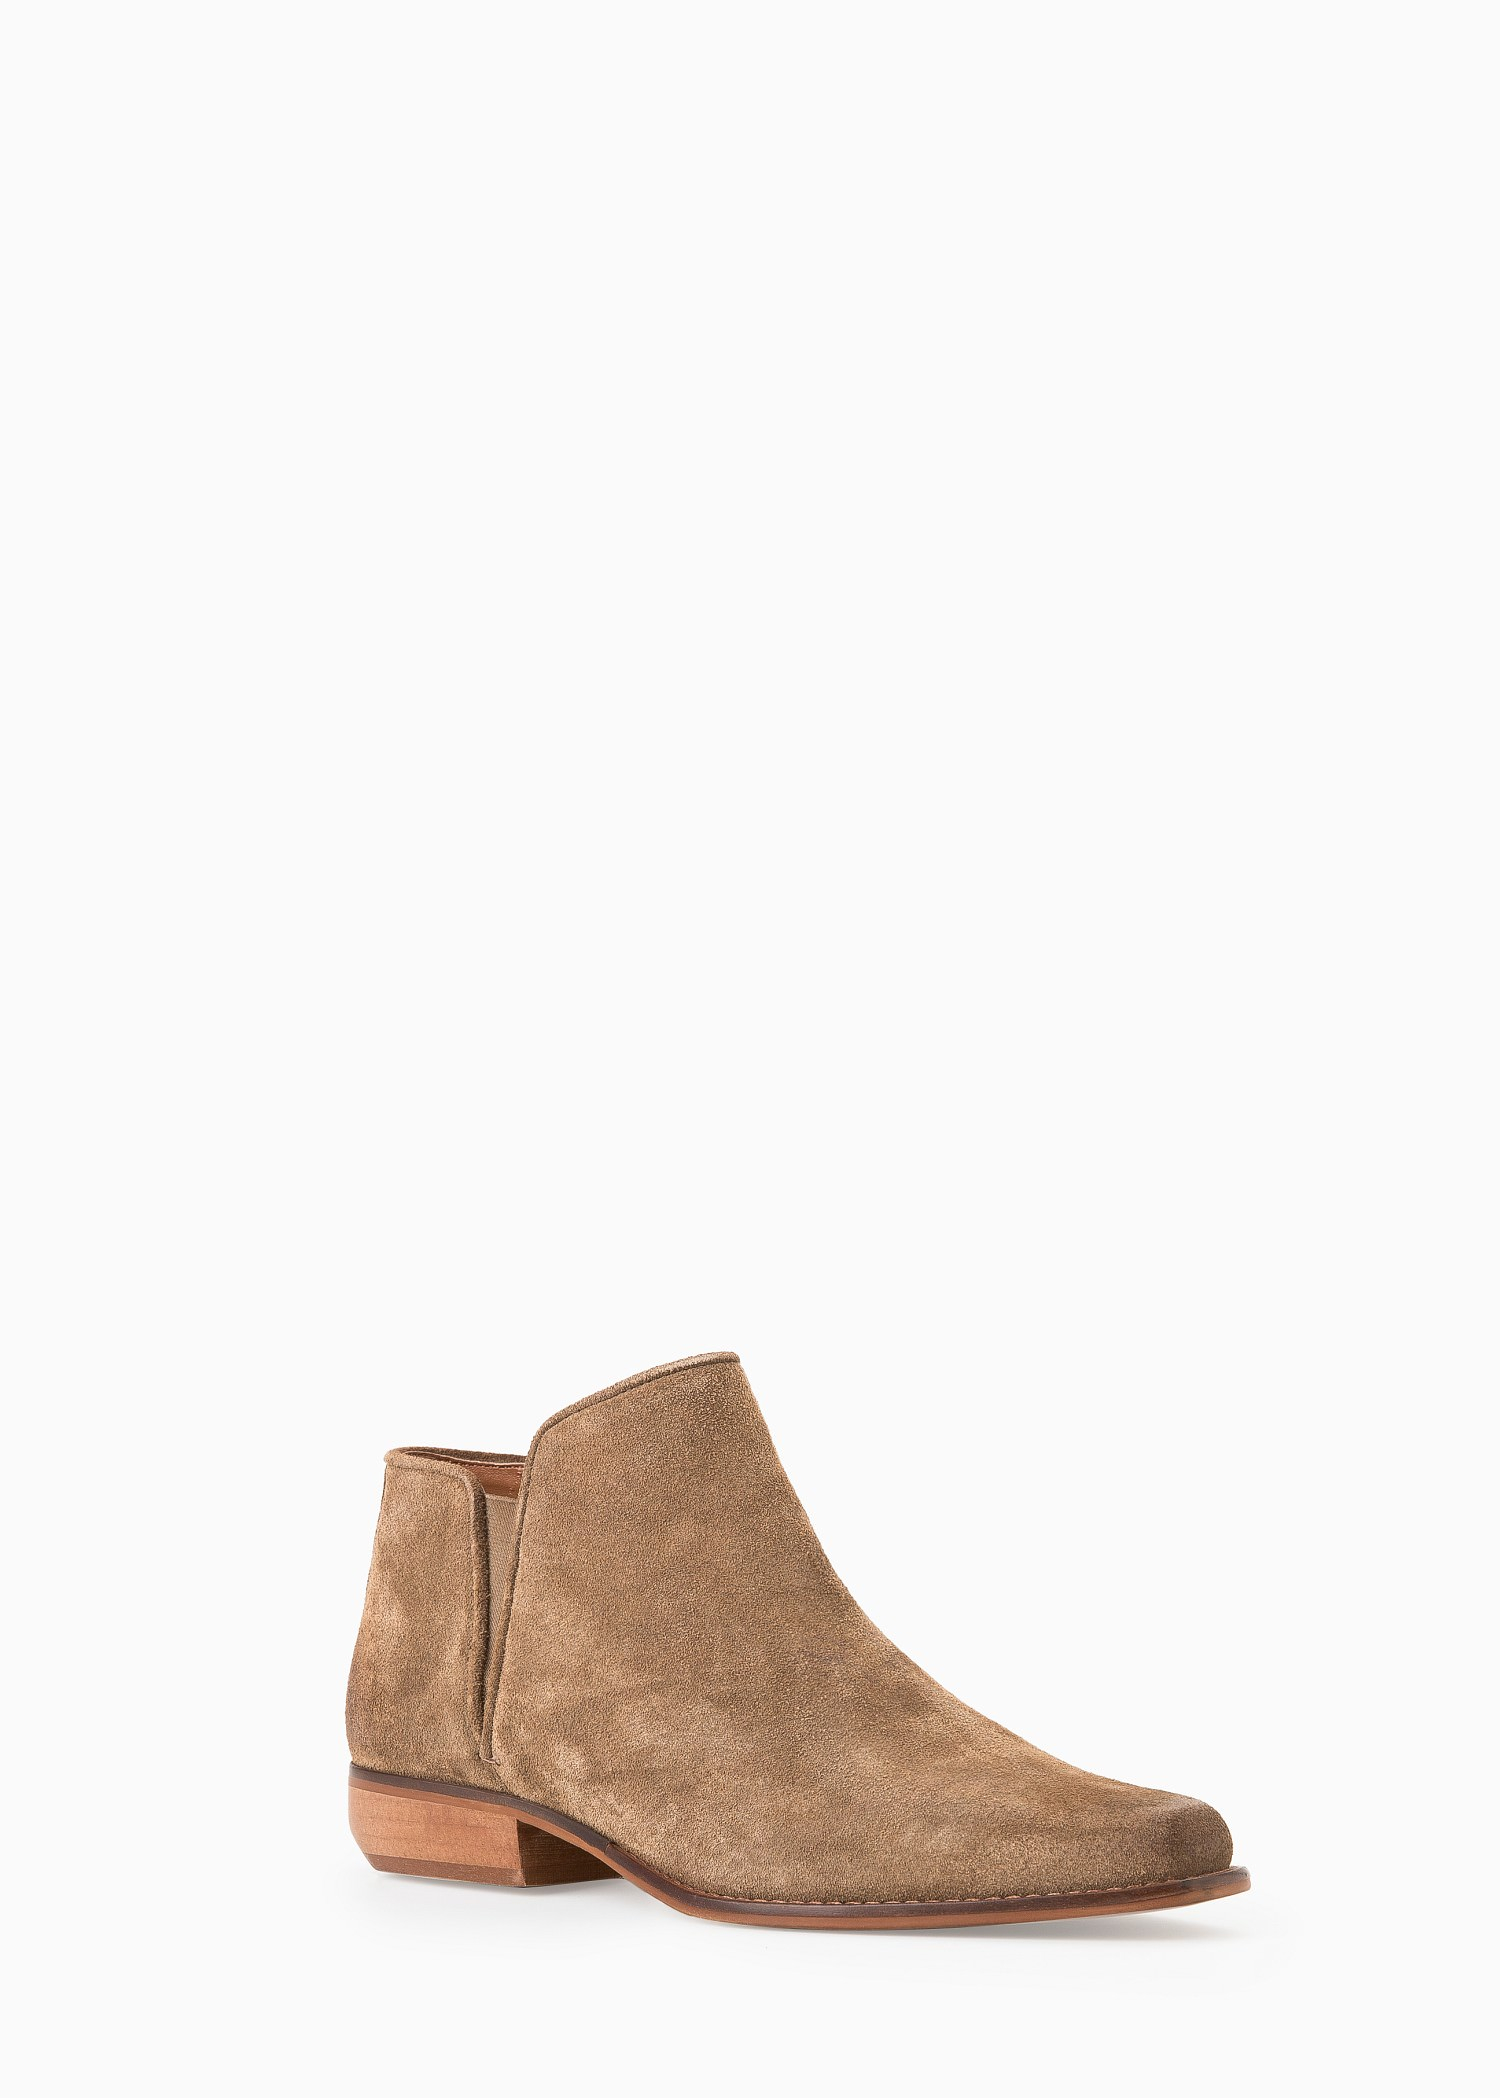 Flat Suede Ankle Boots Aayfah64